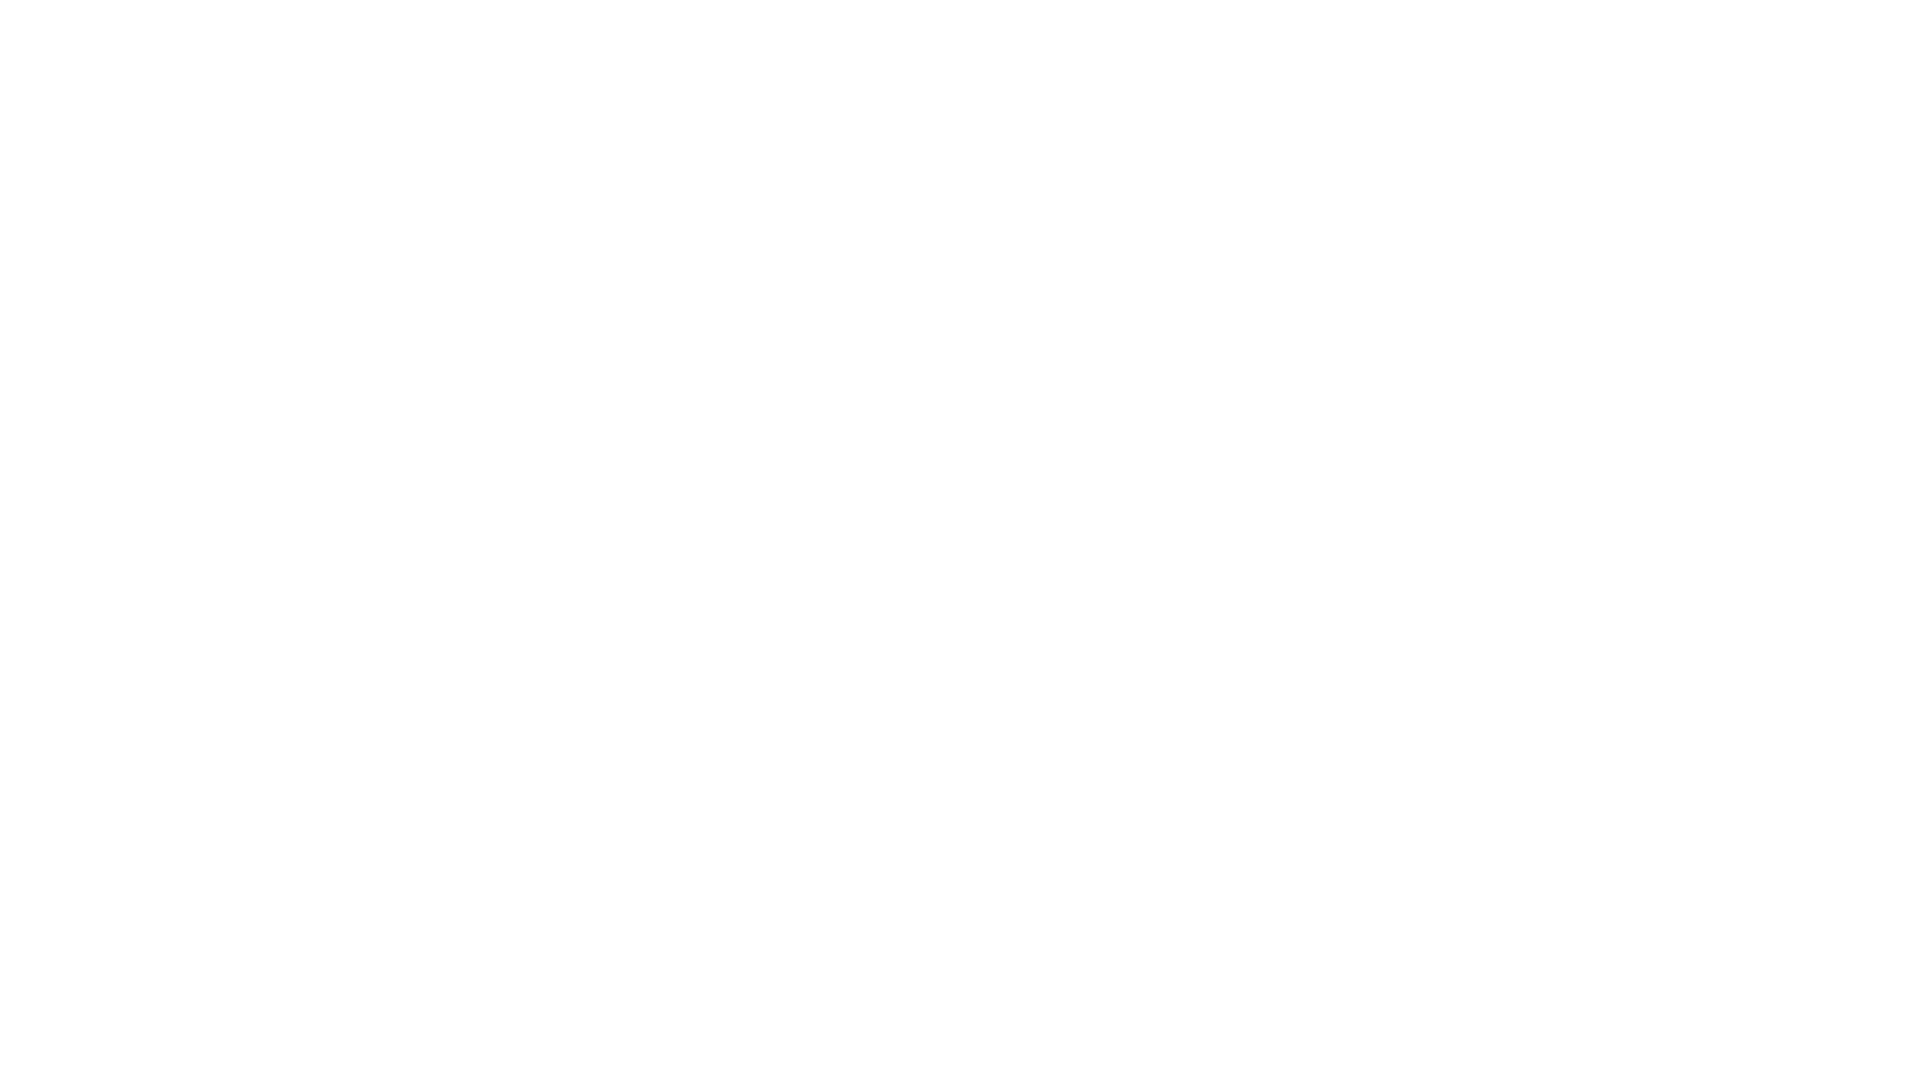 THE SHOWS 11-16 MARCH 2020